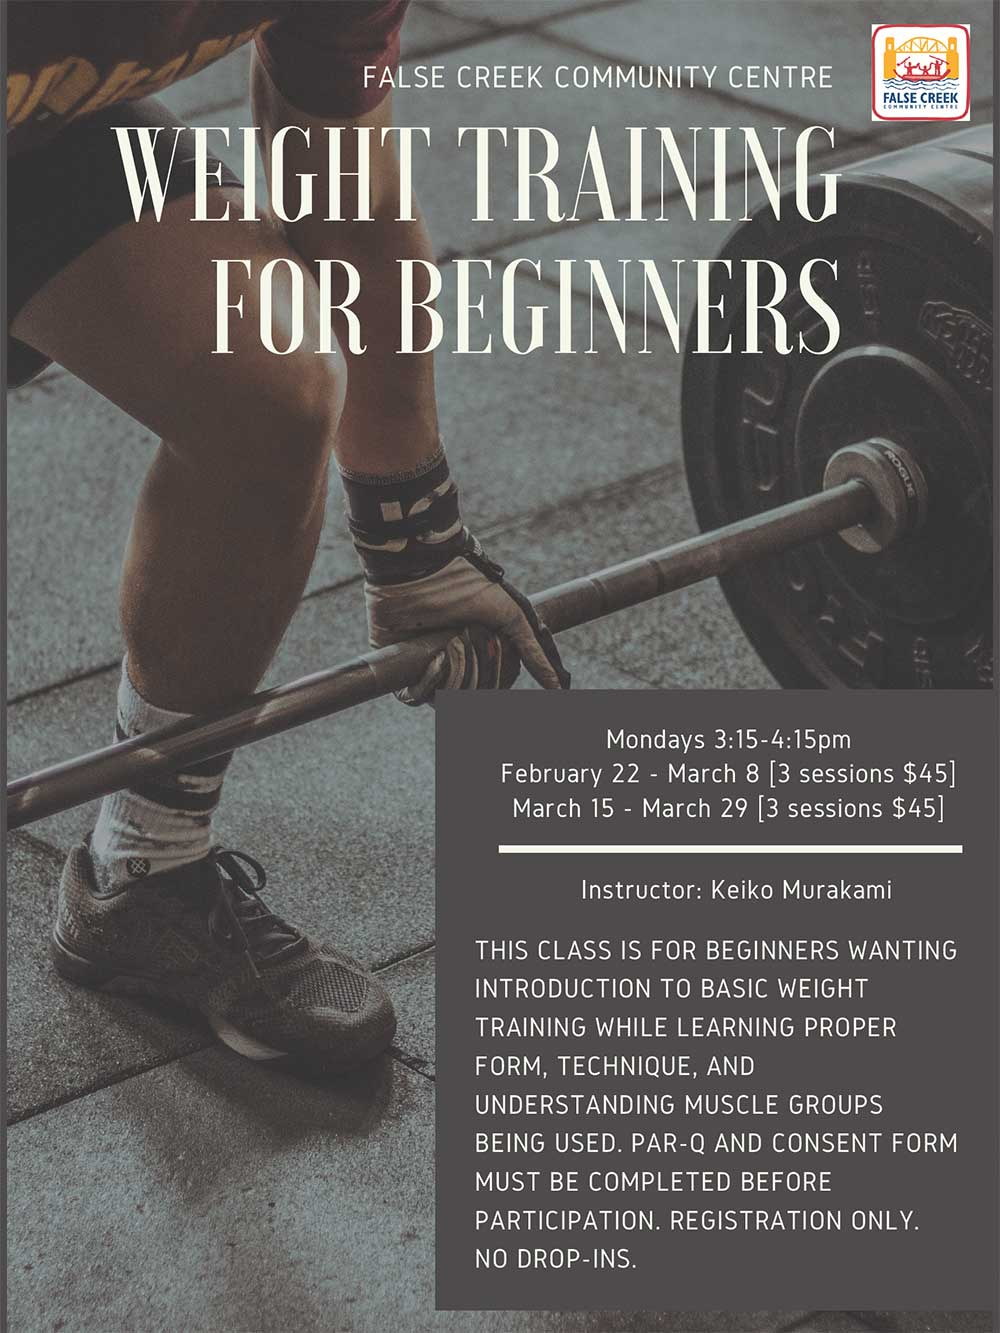 Weight Training for Beginners Mondays 3:15-4:15pm February 22 - March 8 [3 sessions $45] March 15 - March 29 [3 sessions $45] Instructor: Keiko Murakami This class is for beginners wanting introduction to basic weight training while learning proper form, technique, and understanding muscle groups being used. Par-q and consent form must be completed before participation. Registration only.no drop-ins.